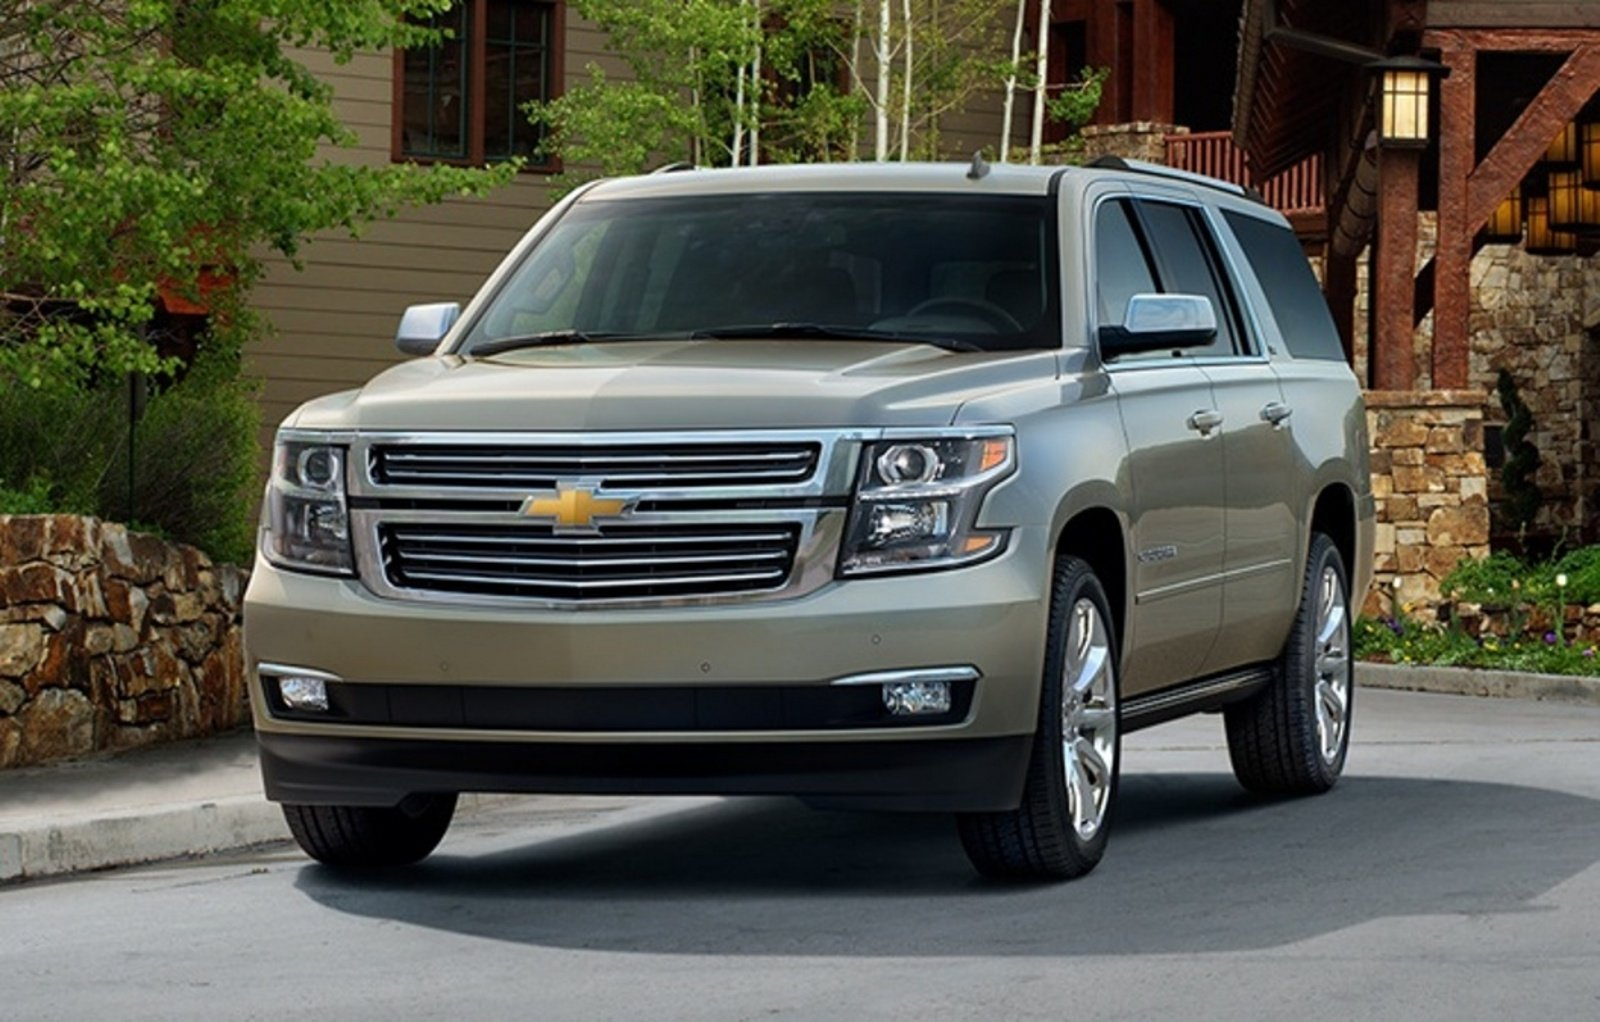 2015 Chevrolet Suburban Review - Gallery - Top Speed